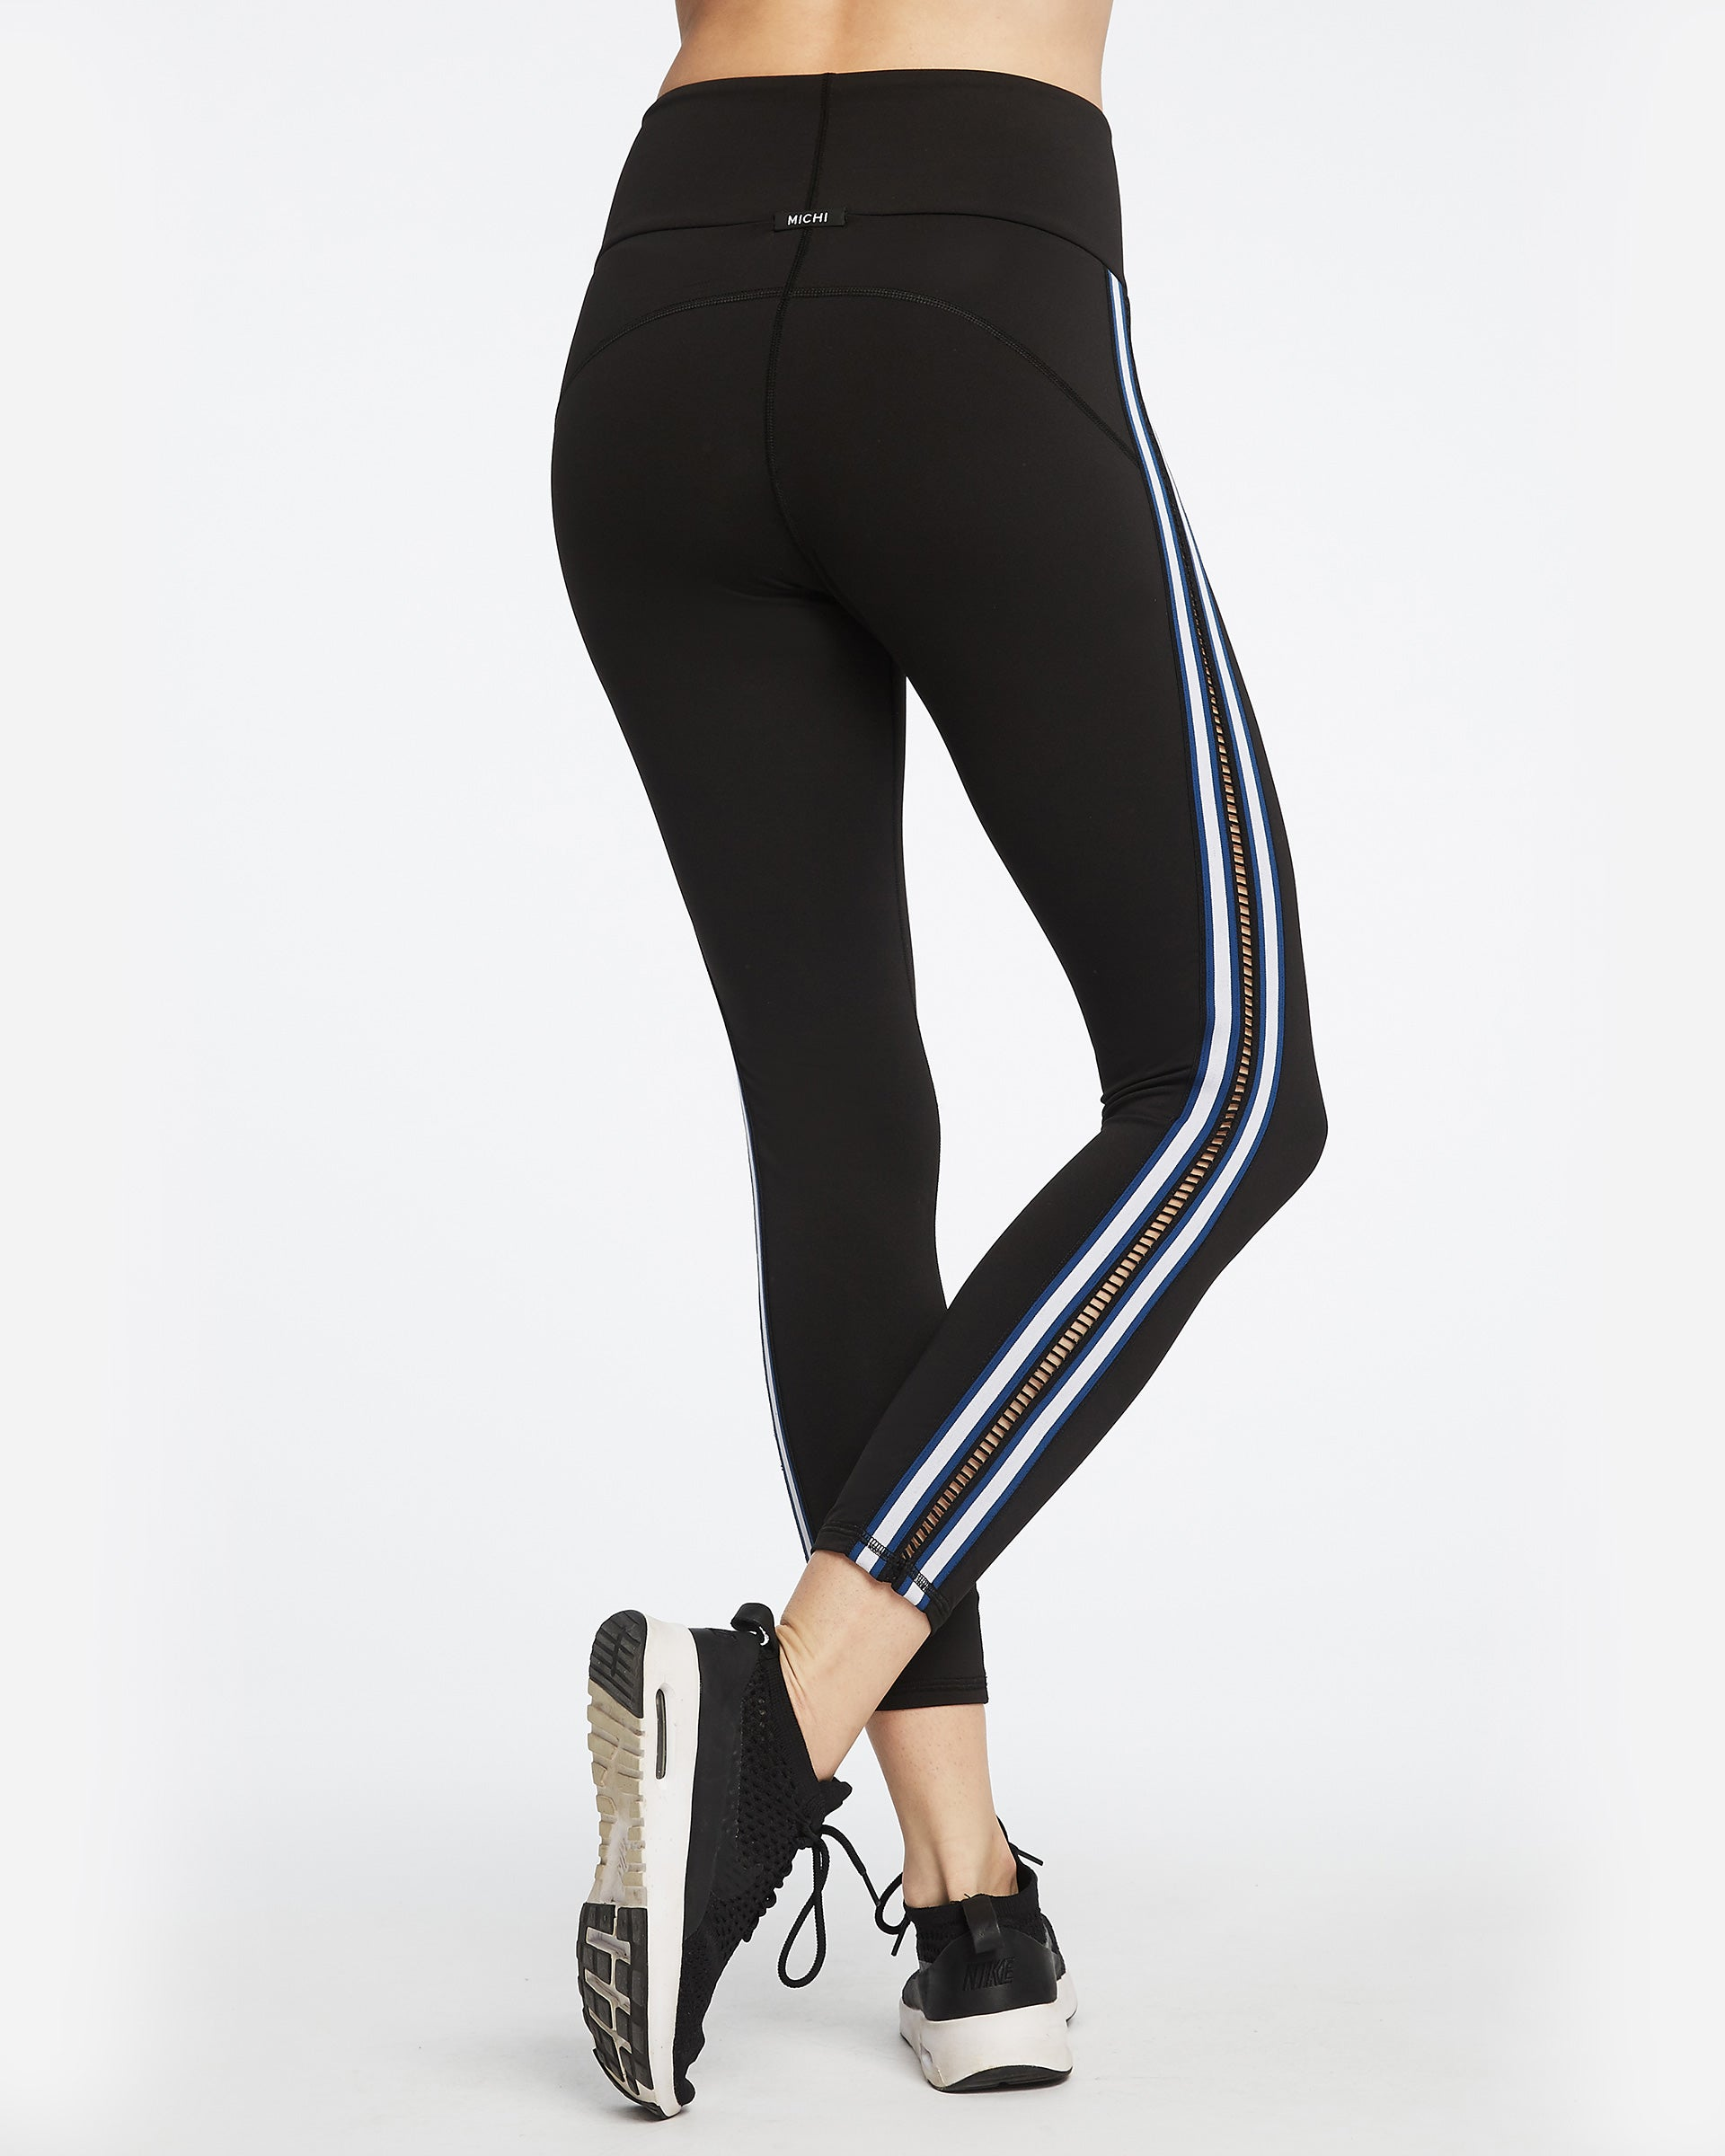 le-mans-high-waisted-legging-black-adriatic-blue